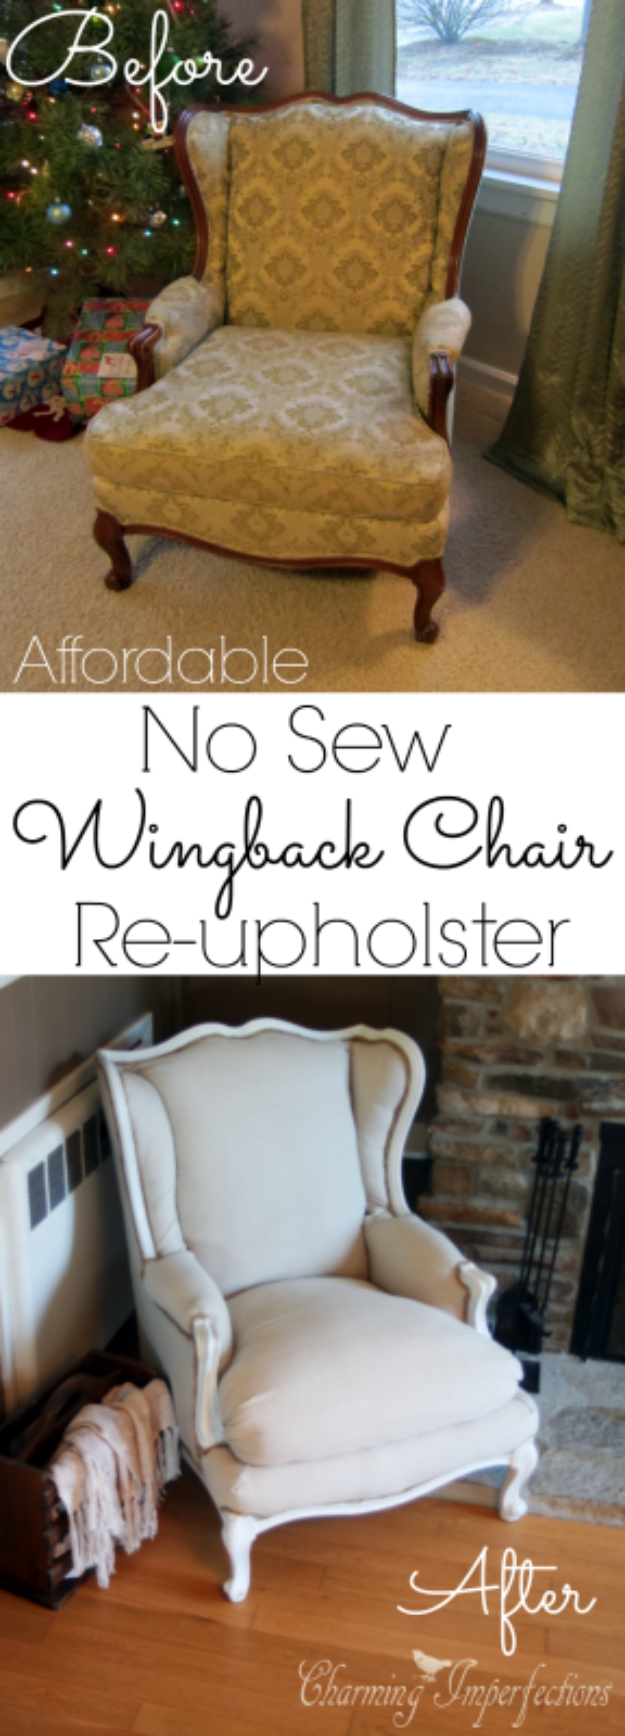 DIY Seating Ideas - Reupholstered No Sew Wingback Chair - Creative Indoor Furniture, Chairs and Easy Seat Projects for Living Room, Bedroom, Dorm and Kids Room. Cheap Projects for those On A Budget. Tutorials for Cushions, No Sew Covers and Benches